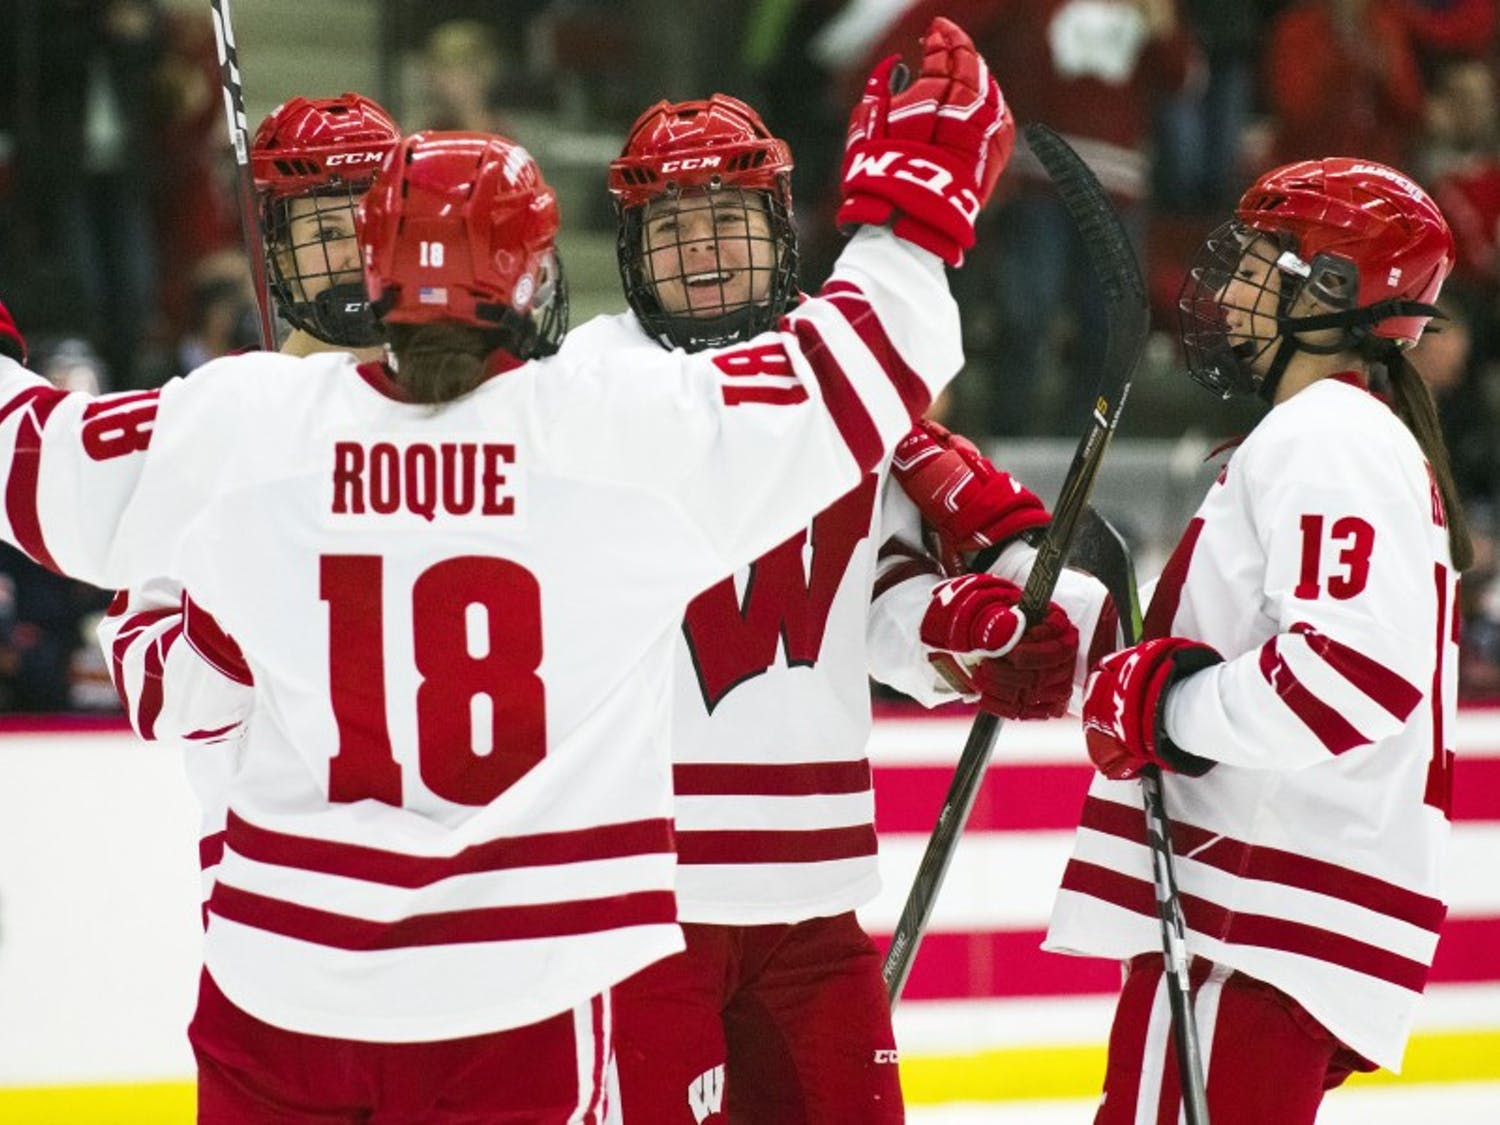 Wisconsin's second line — junior Abby Roque and freshmen Britta Curl and Sophie Shirley — lead the way with three goals against Syracuse.